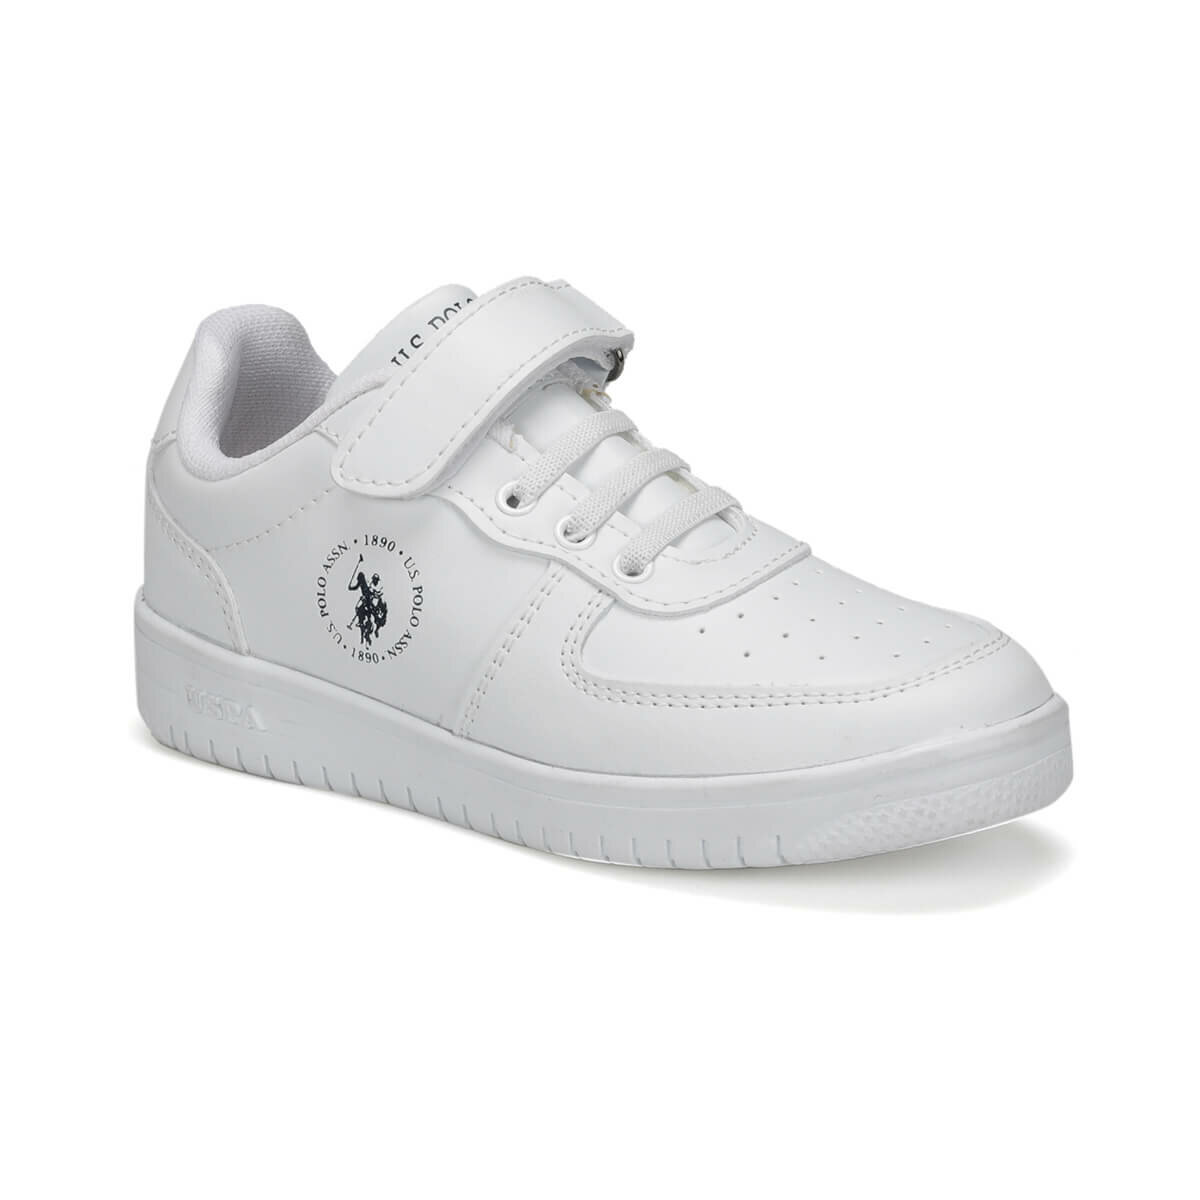 FLO DIMLER 9PR White Male Child Sneaker Shoes U.S. POLO ASSN.